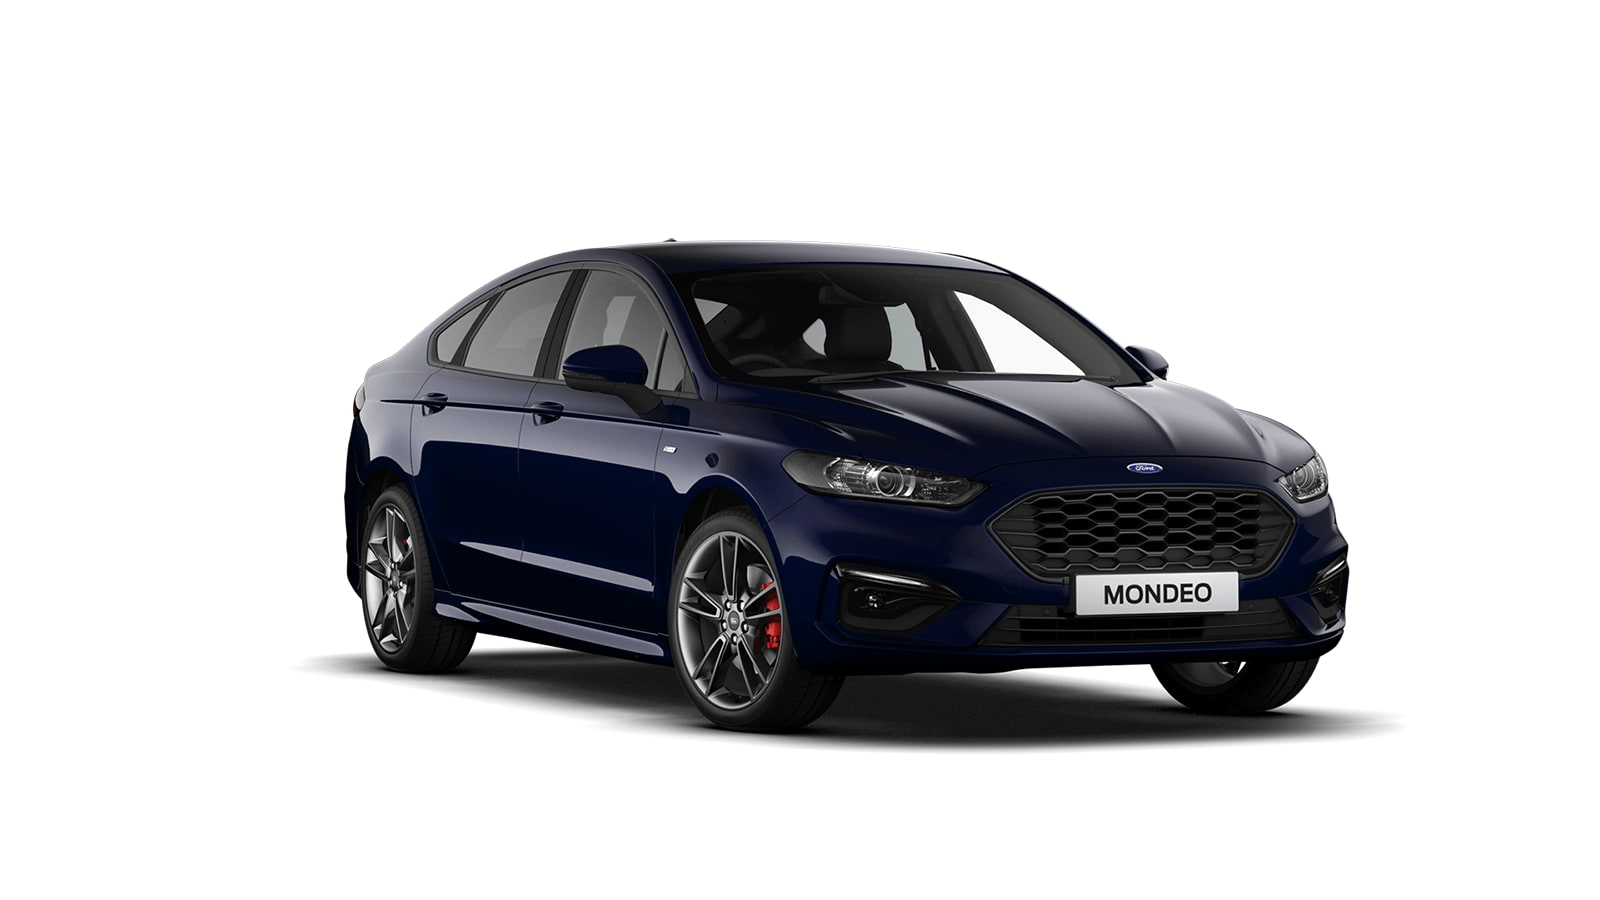 MONDEO ST-Line Edition